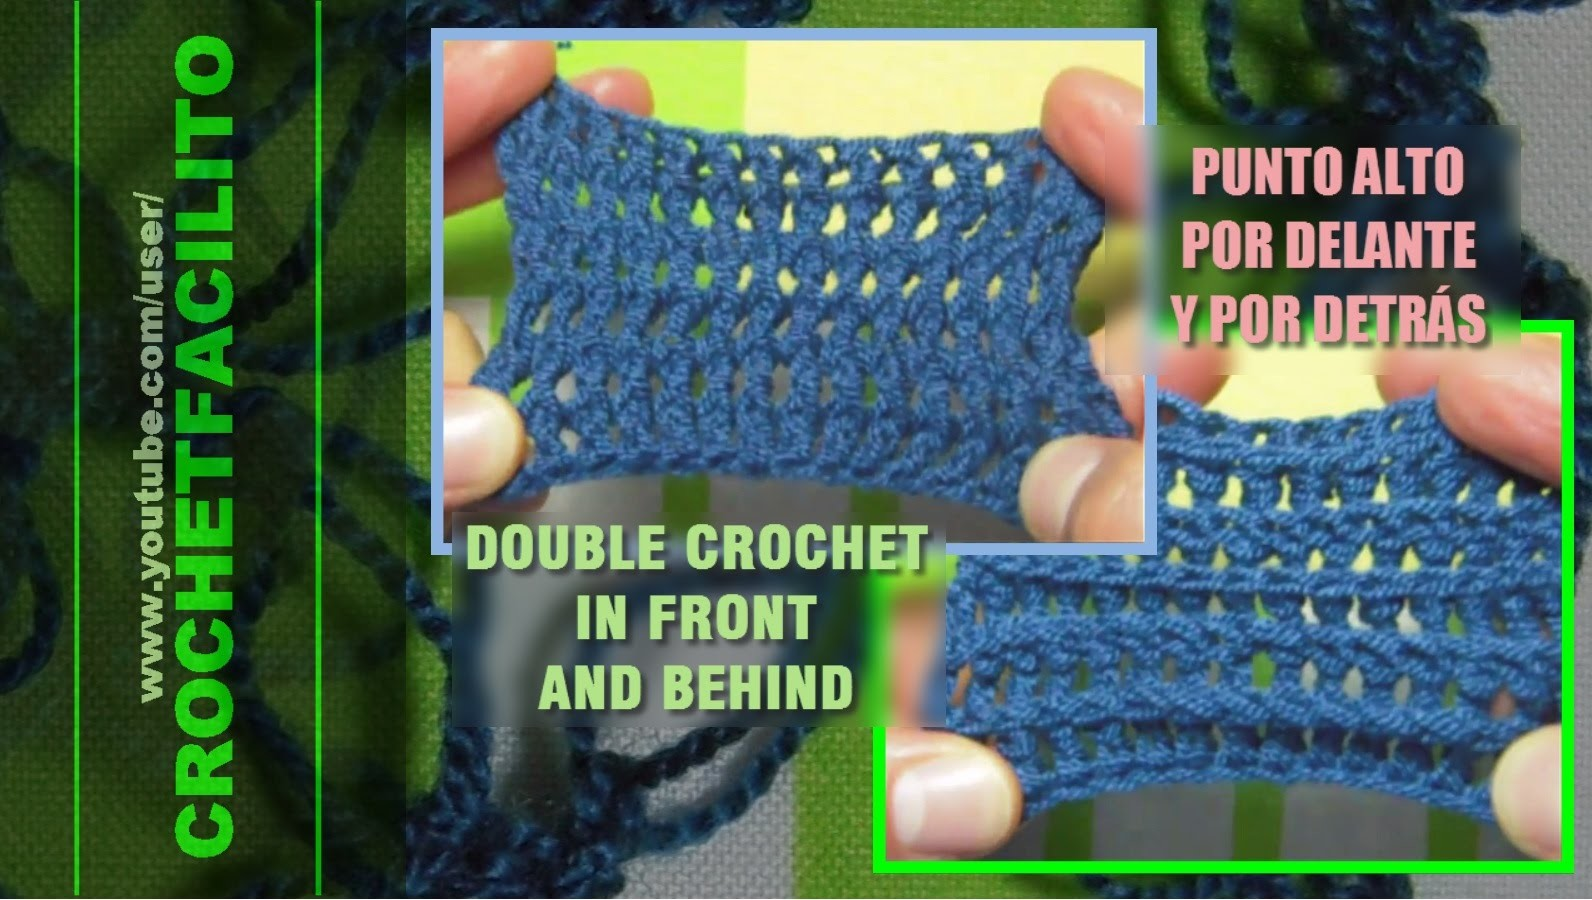 CROCHET - PUNTO ALTO POR DELANTE Y POR DETRÁS - DOUBLE CROCHET IN FRONT AND BEHIND